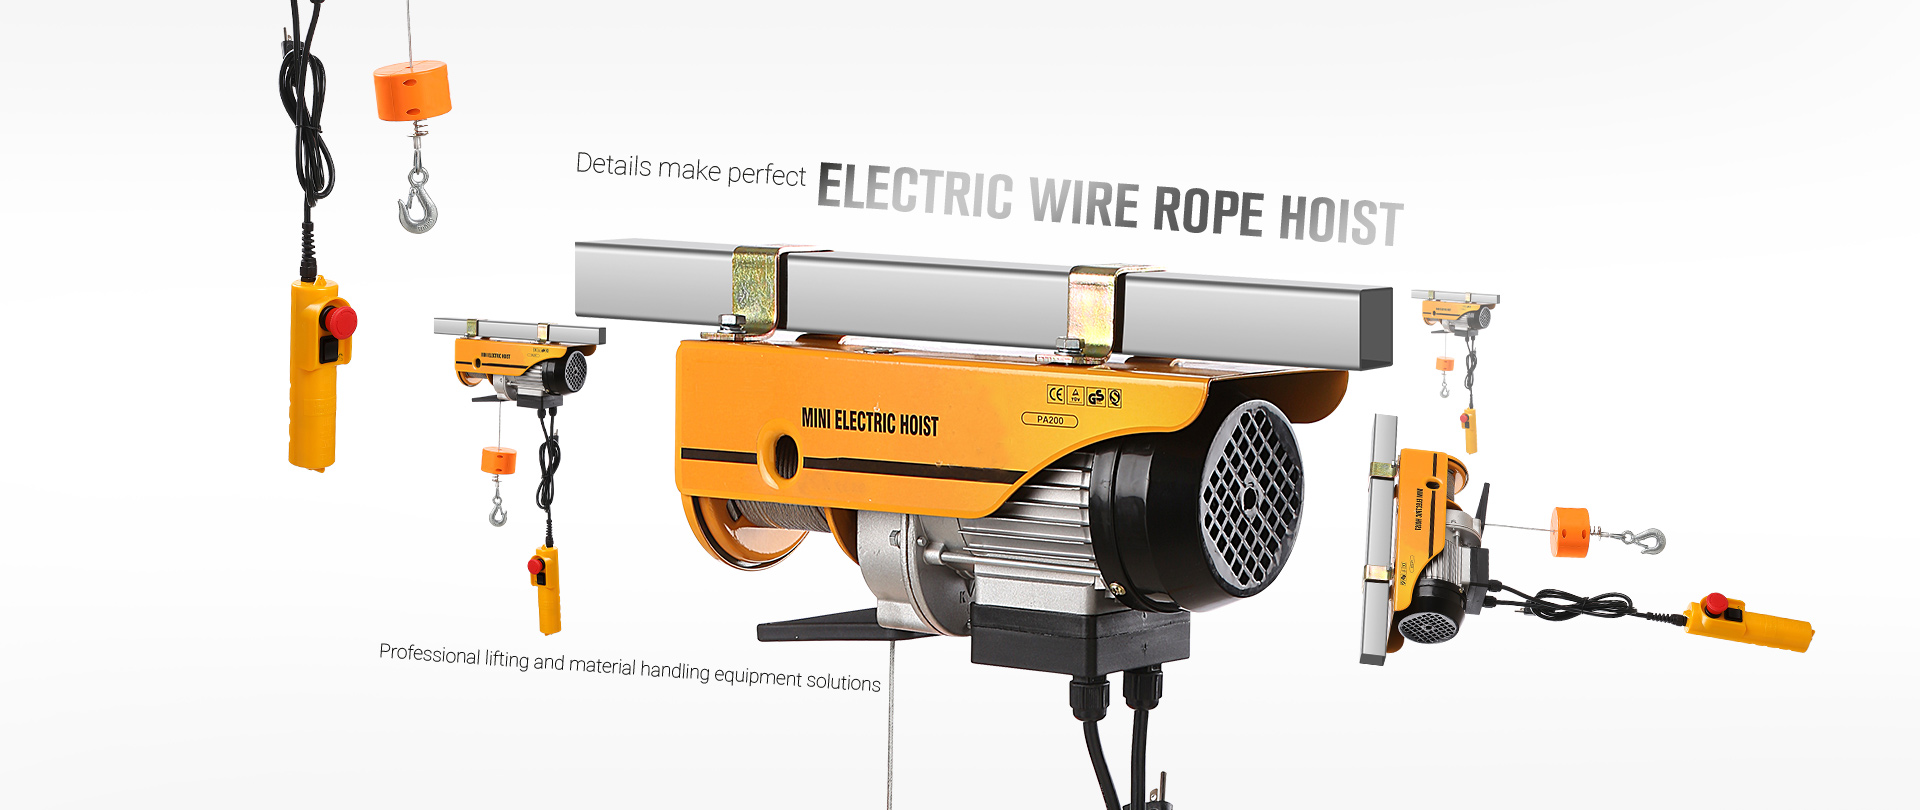 Electric-wire-rope-hoist